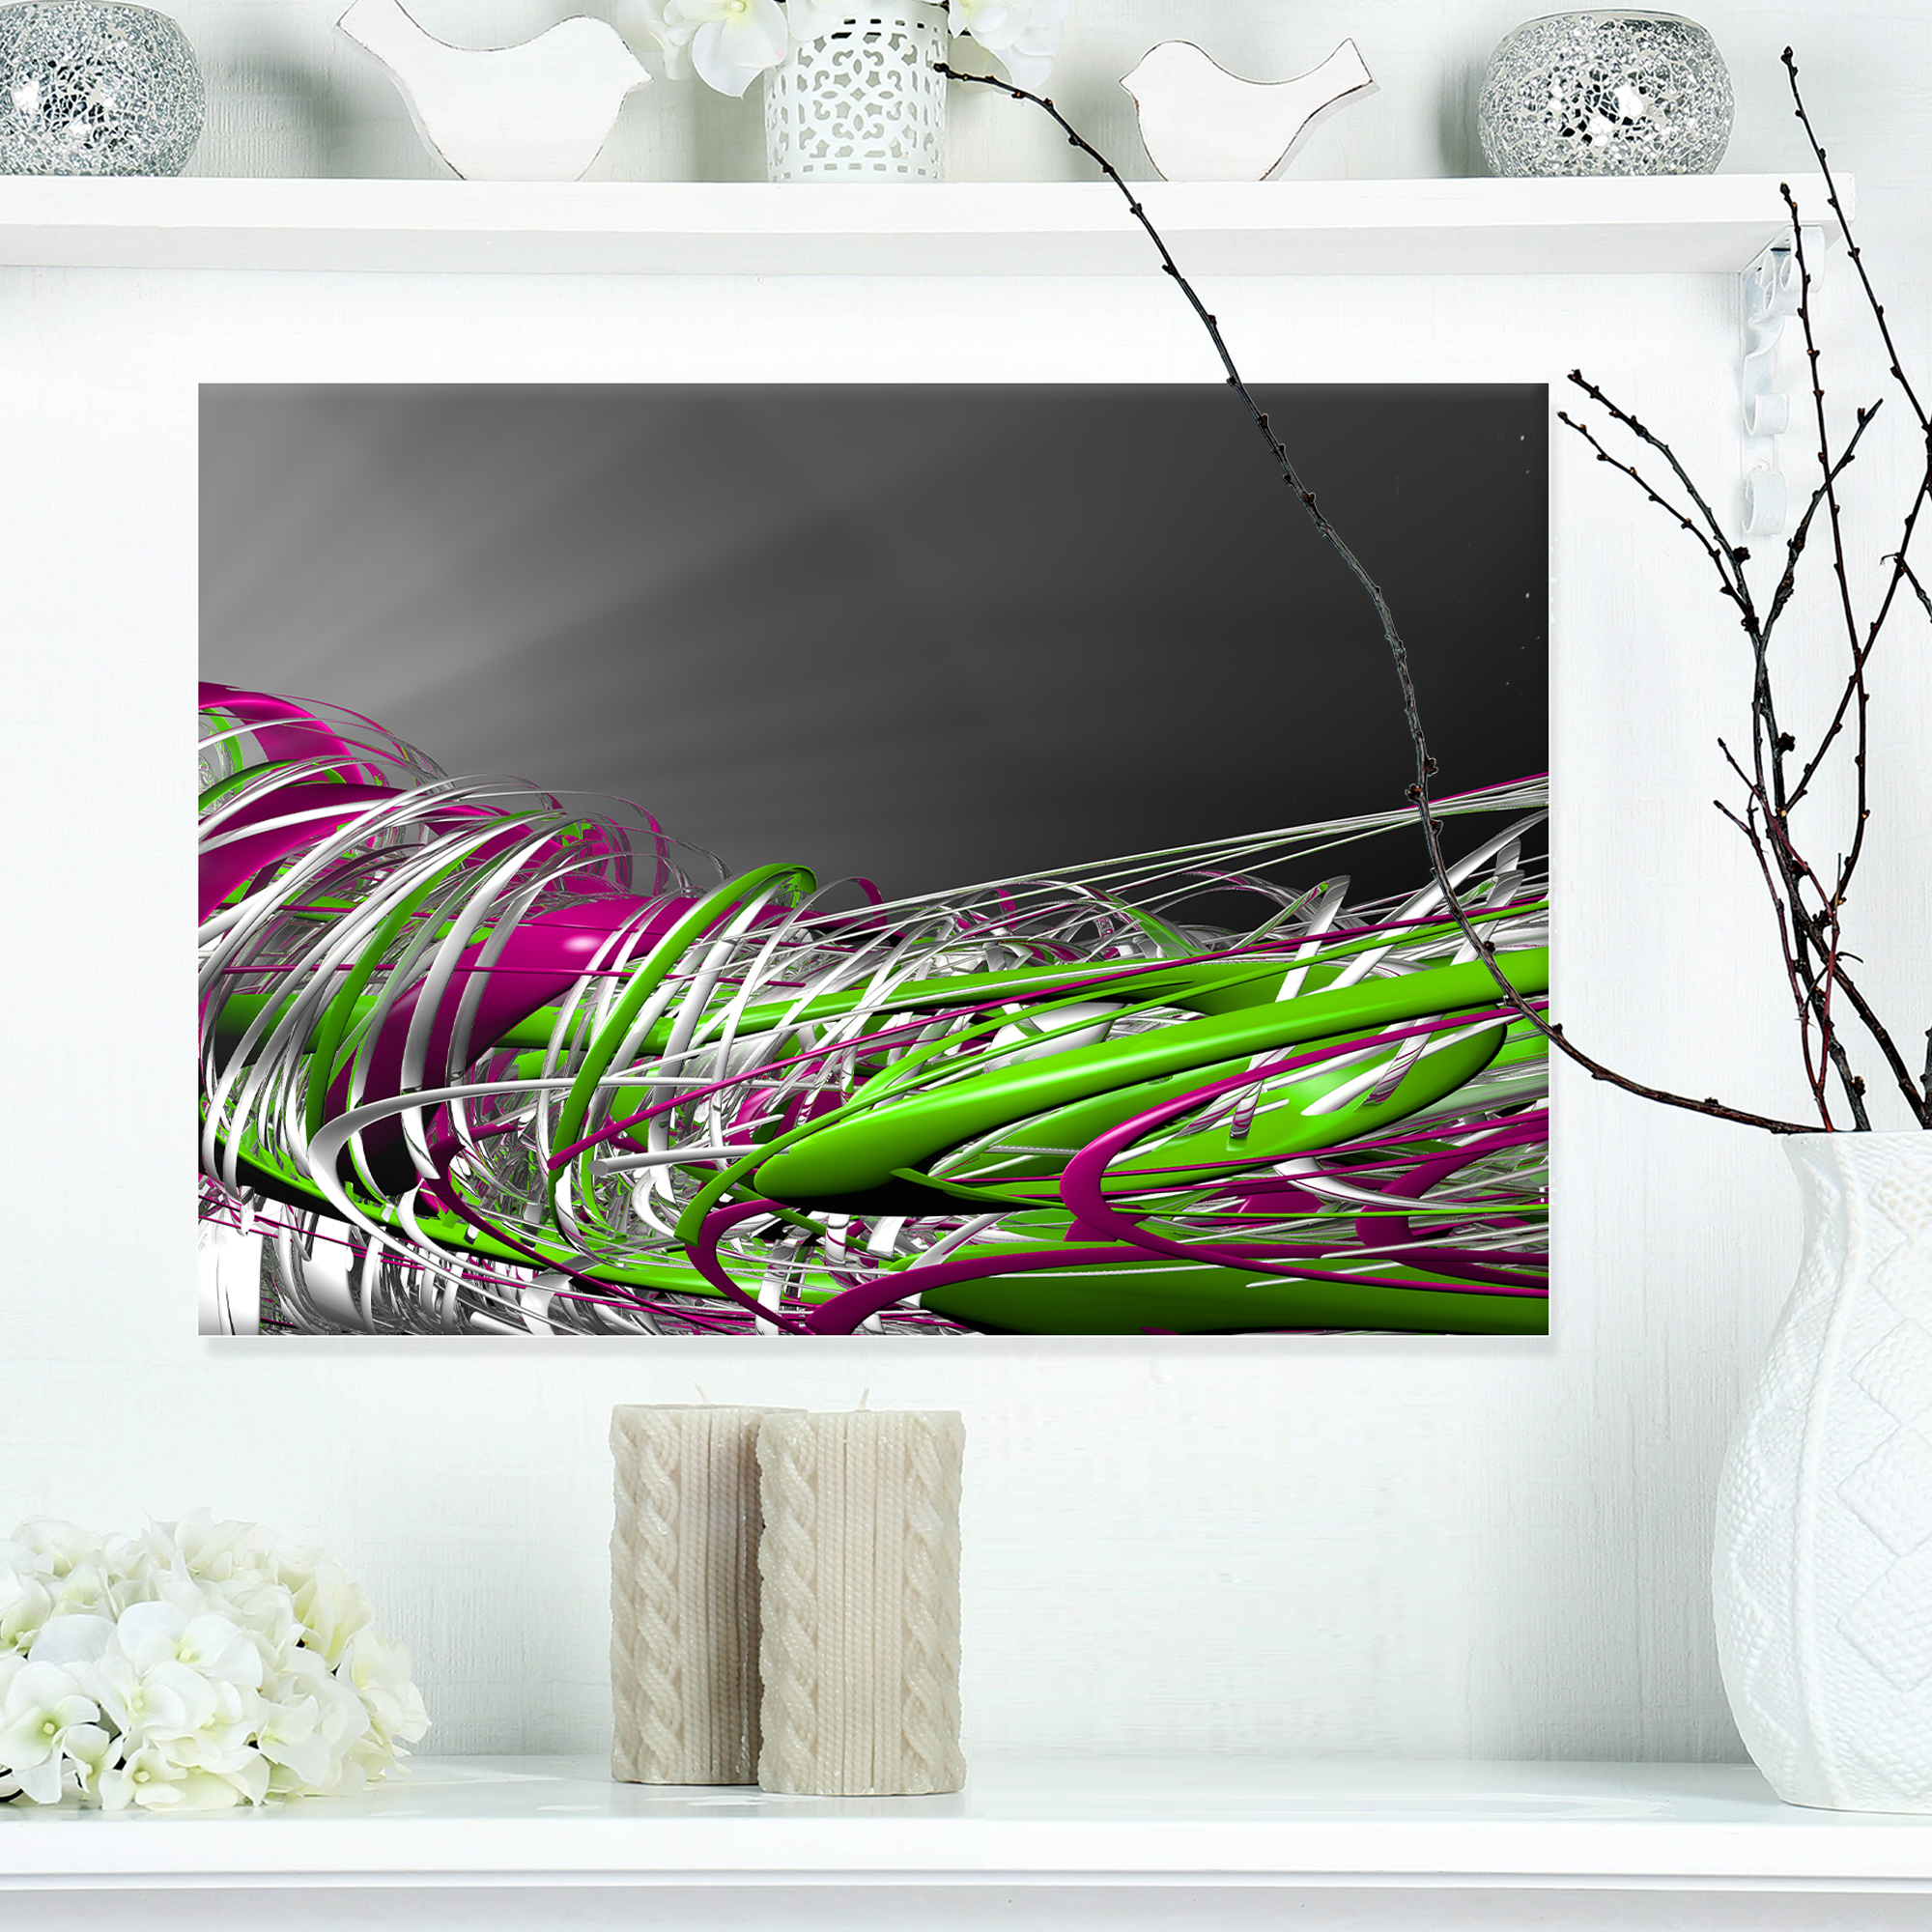 ABSTRACT FRACTAL GREEN PURPLE FLOWER CANVAS PRINT WALL ART PICTURE PHOTO